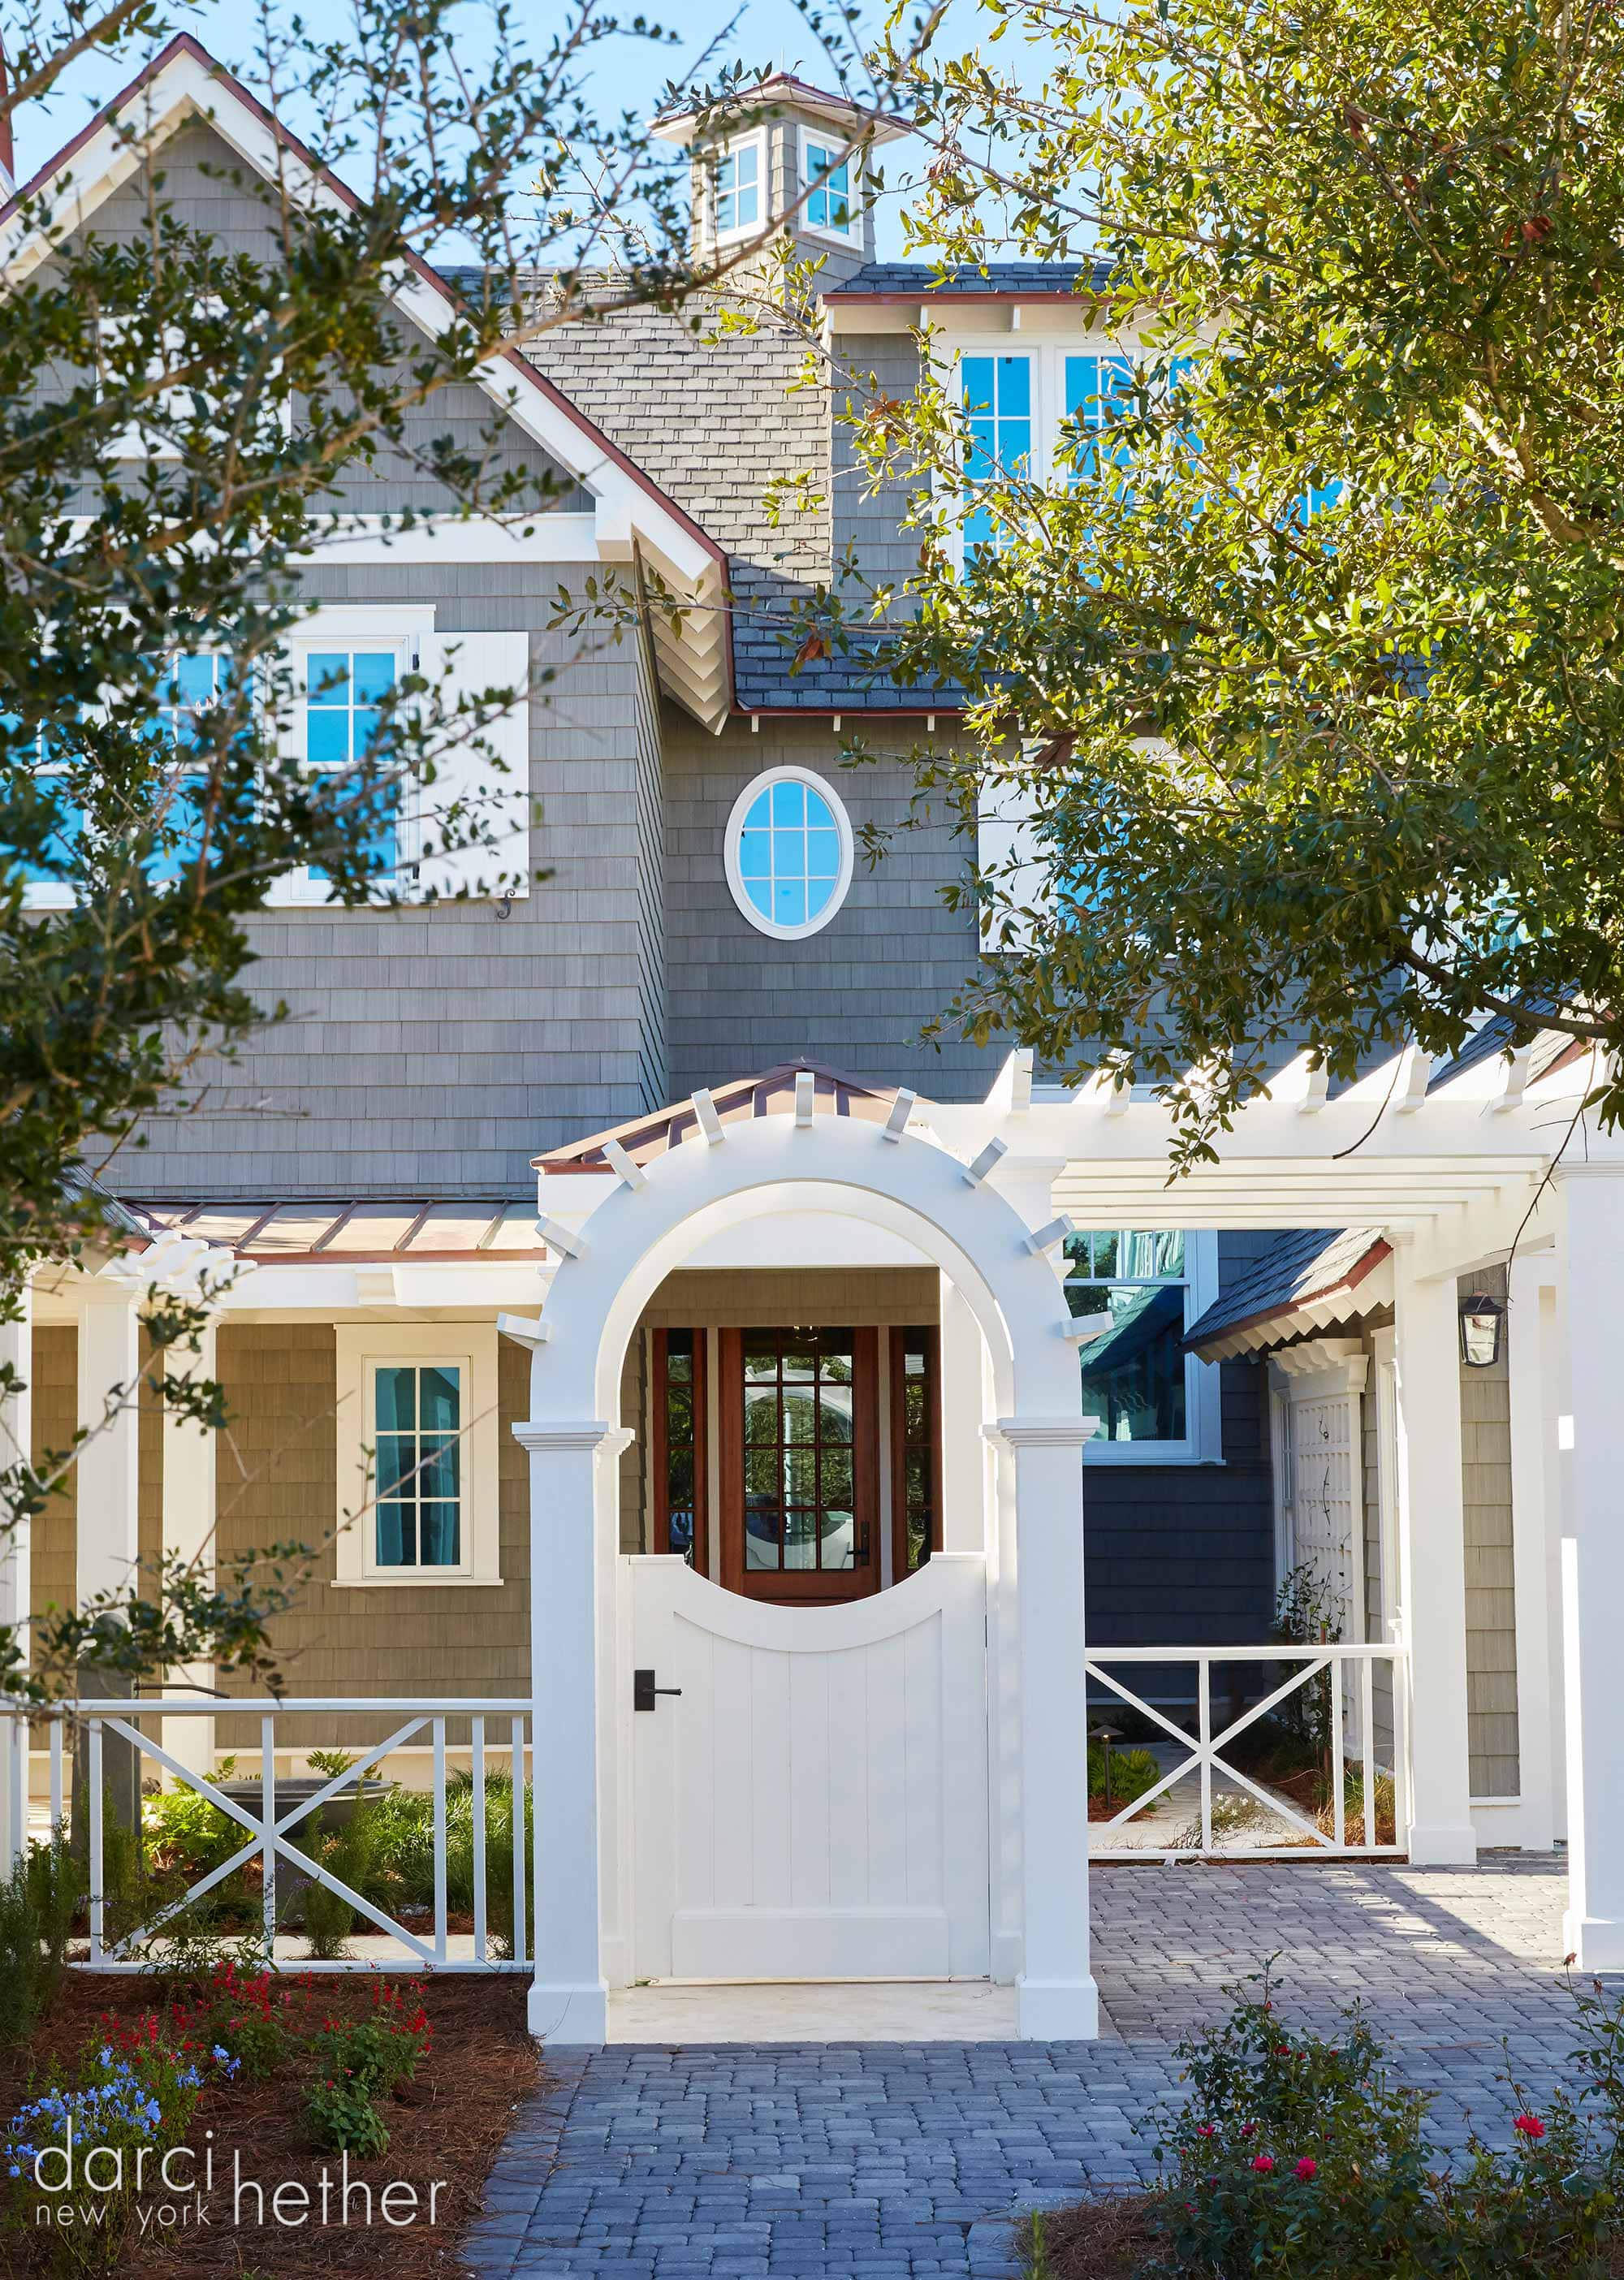 exterior of new home beach house at watersound 30A florida. design by darci hether new york for empty nester clients.